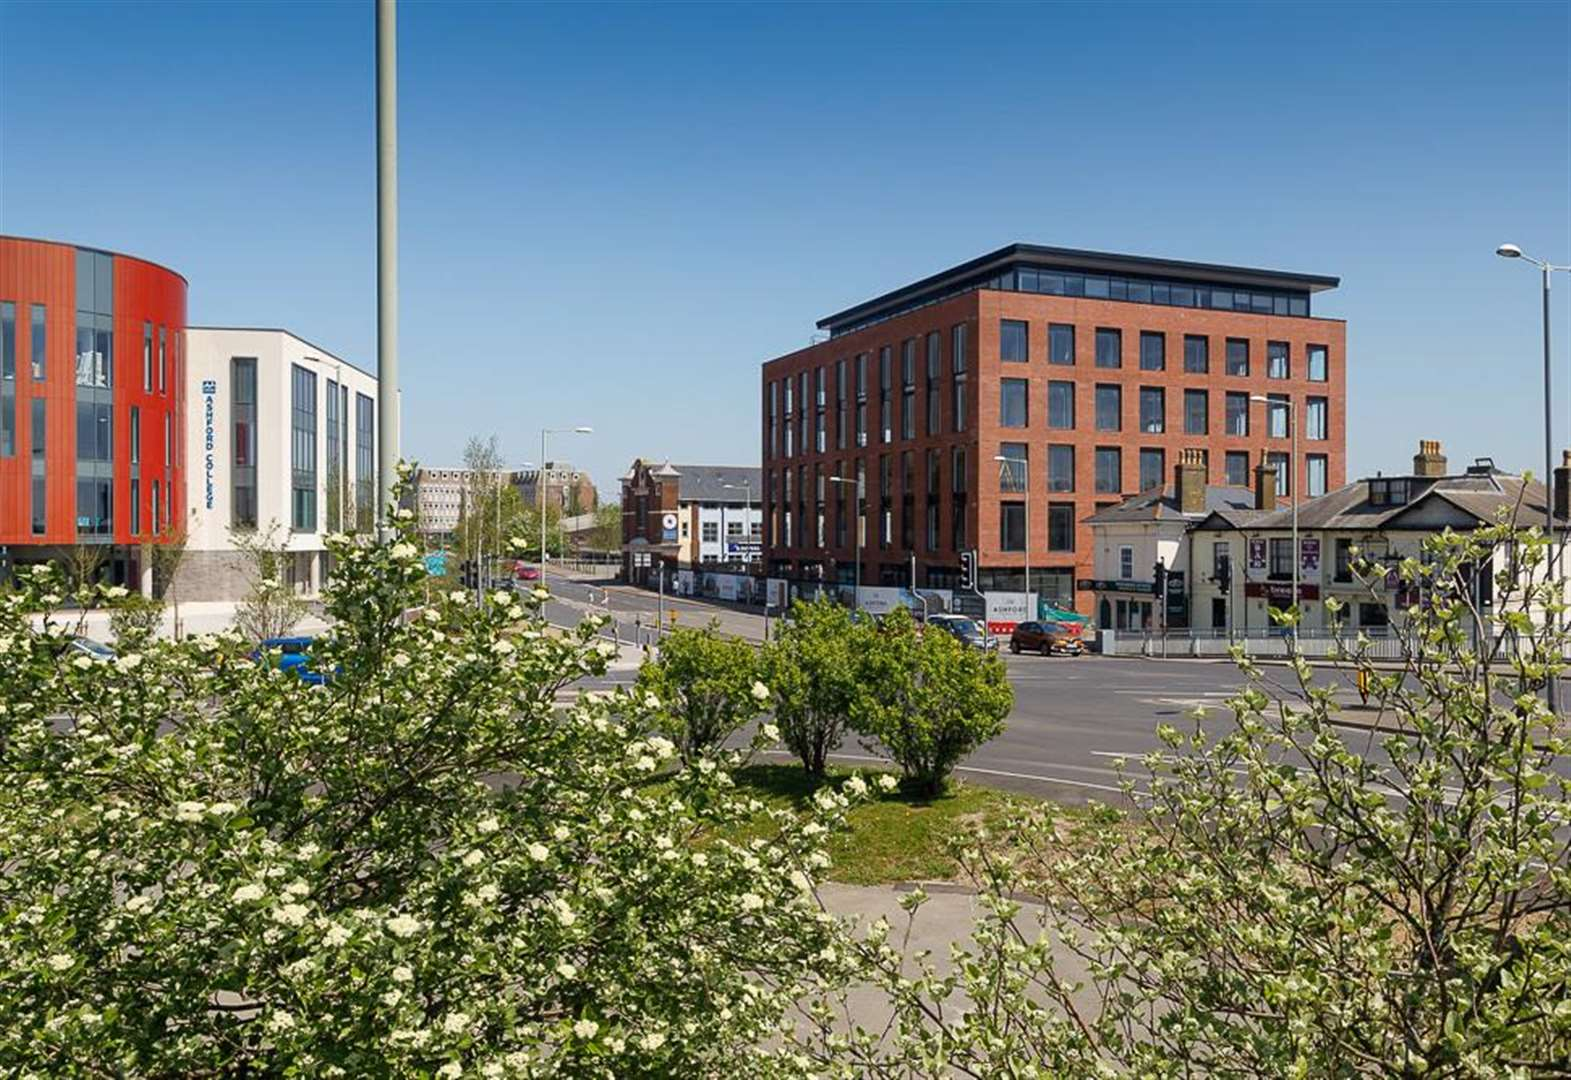 Jobs boost as office development opens for business